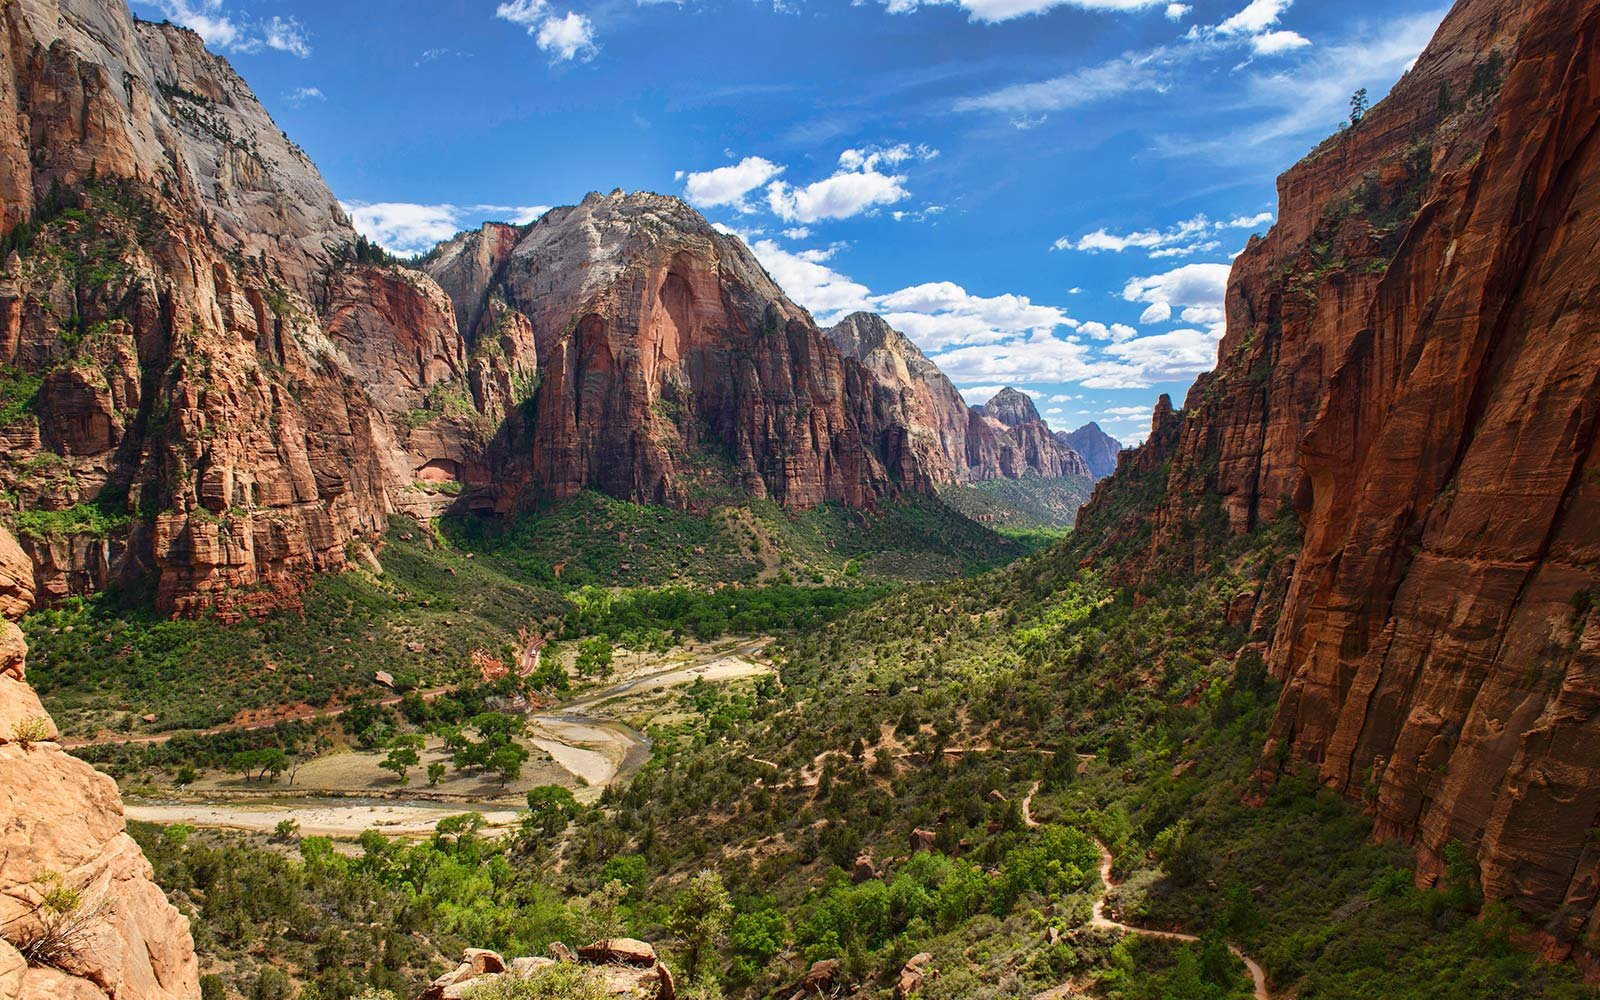 Appreciating nature at Zion National Park